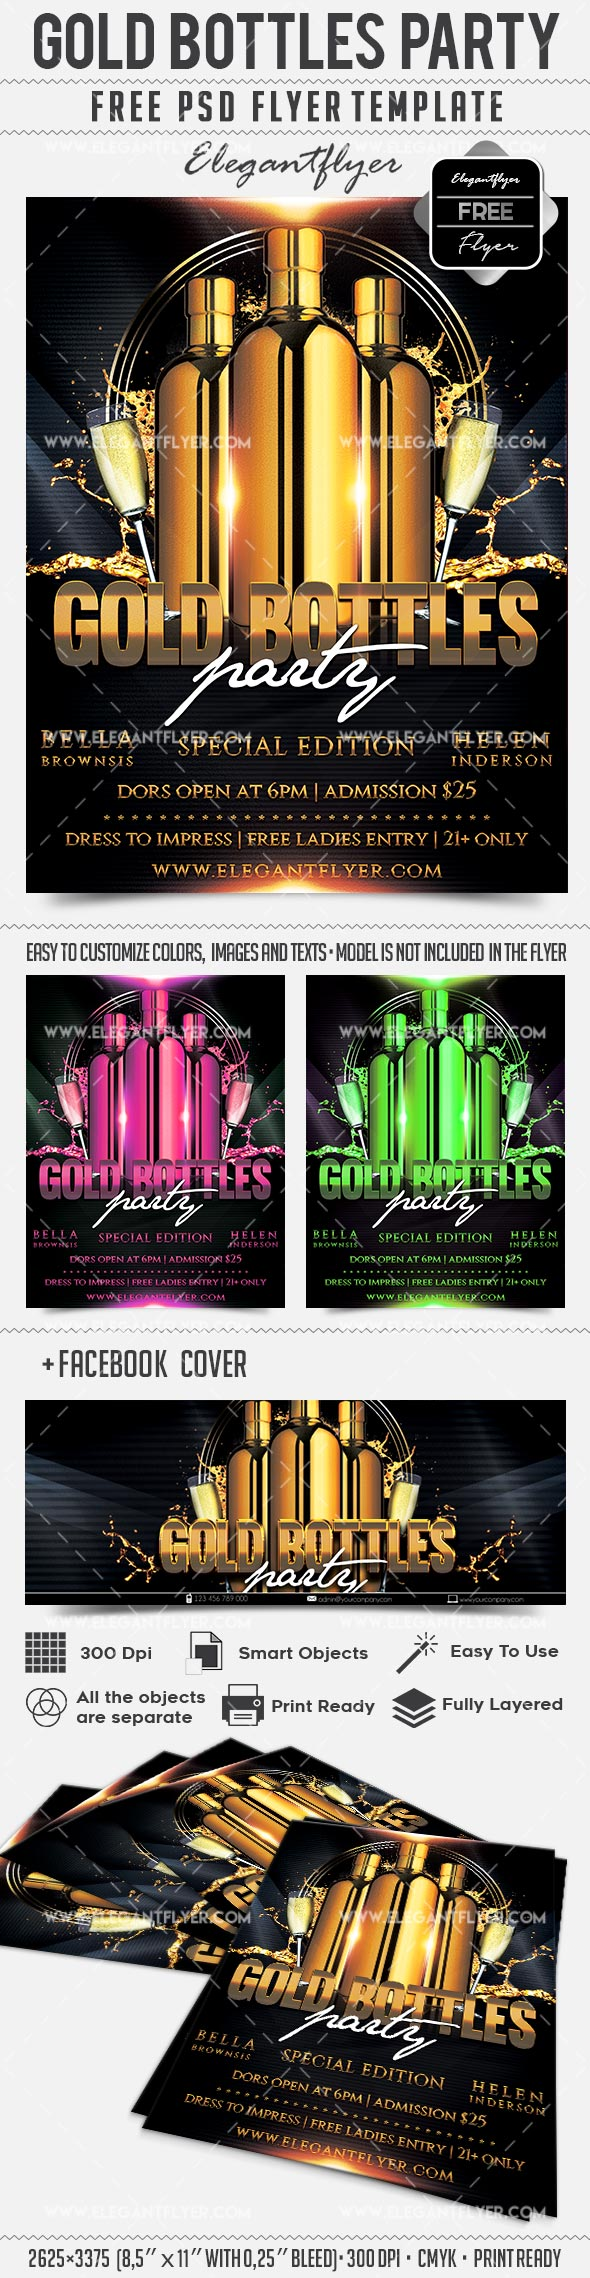 Gold Bottle Party – Free Flyer PSD Template + Facebook Cover